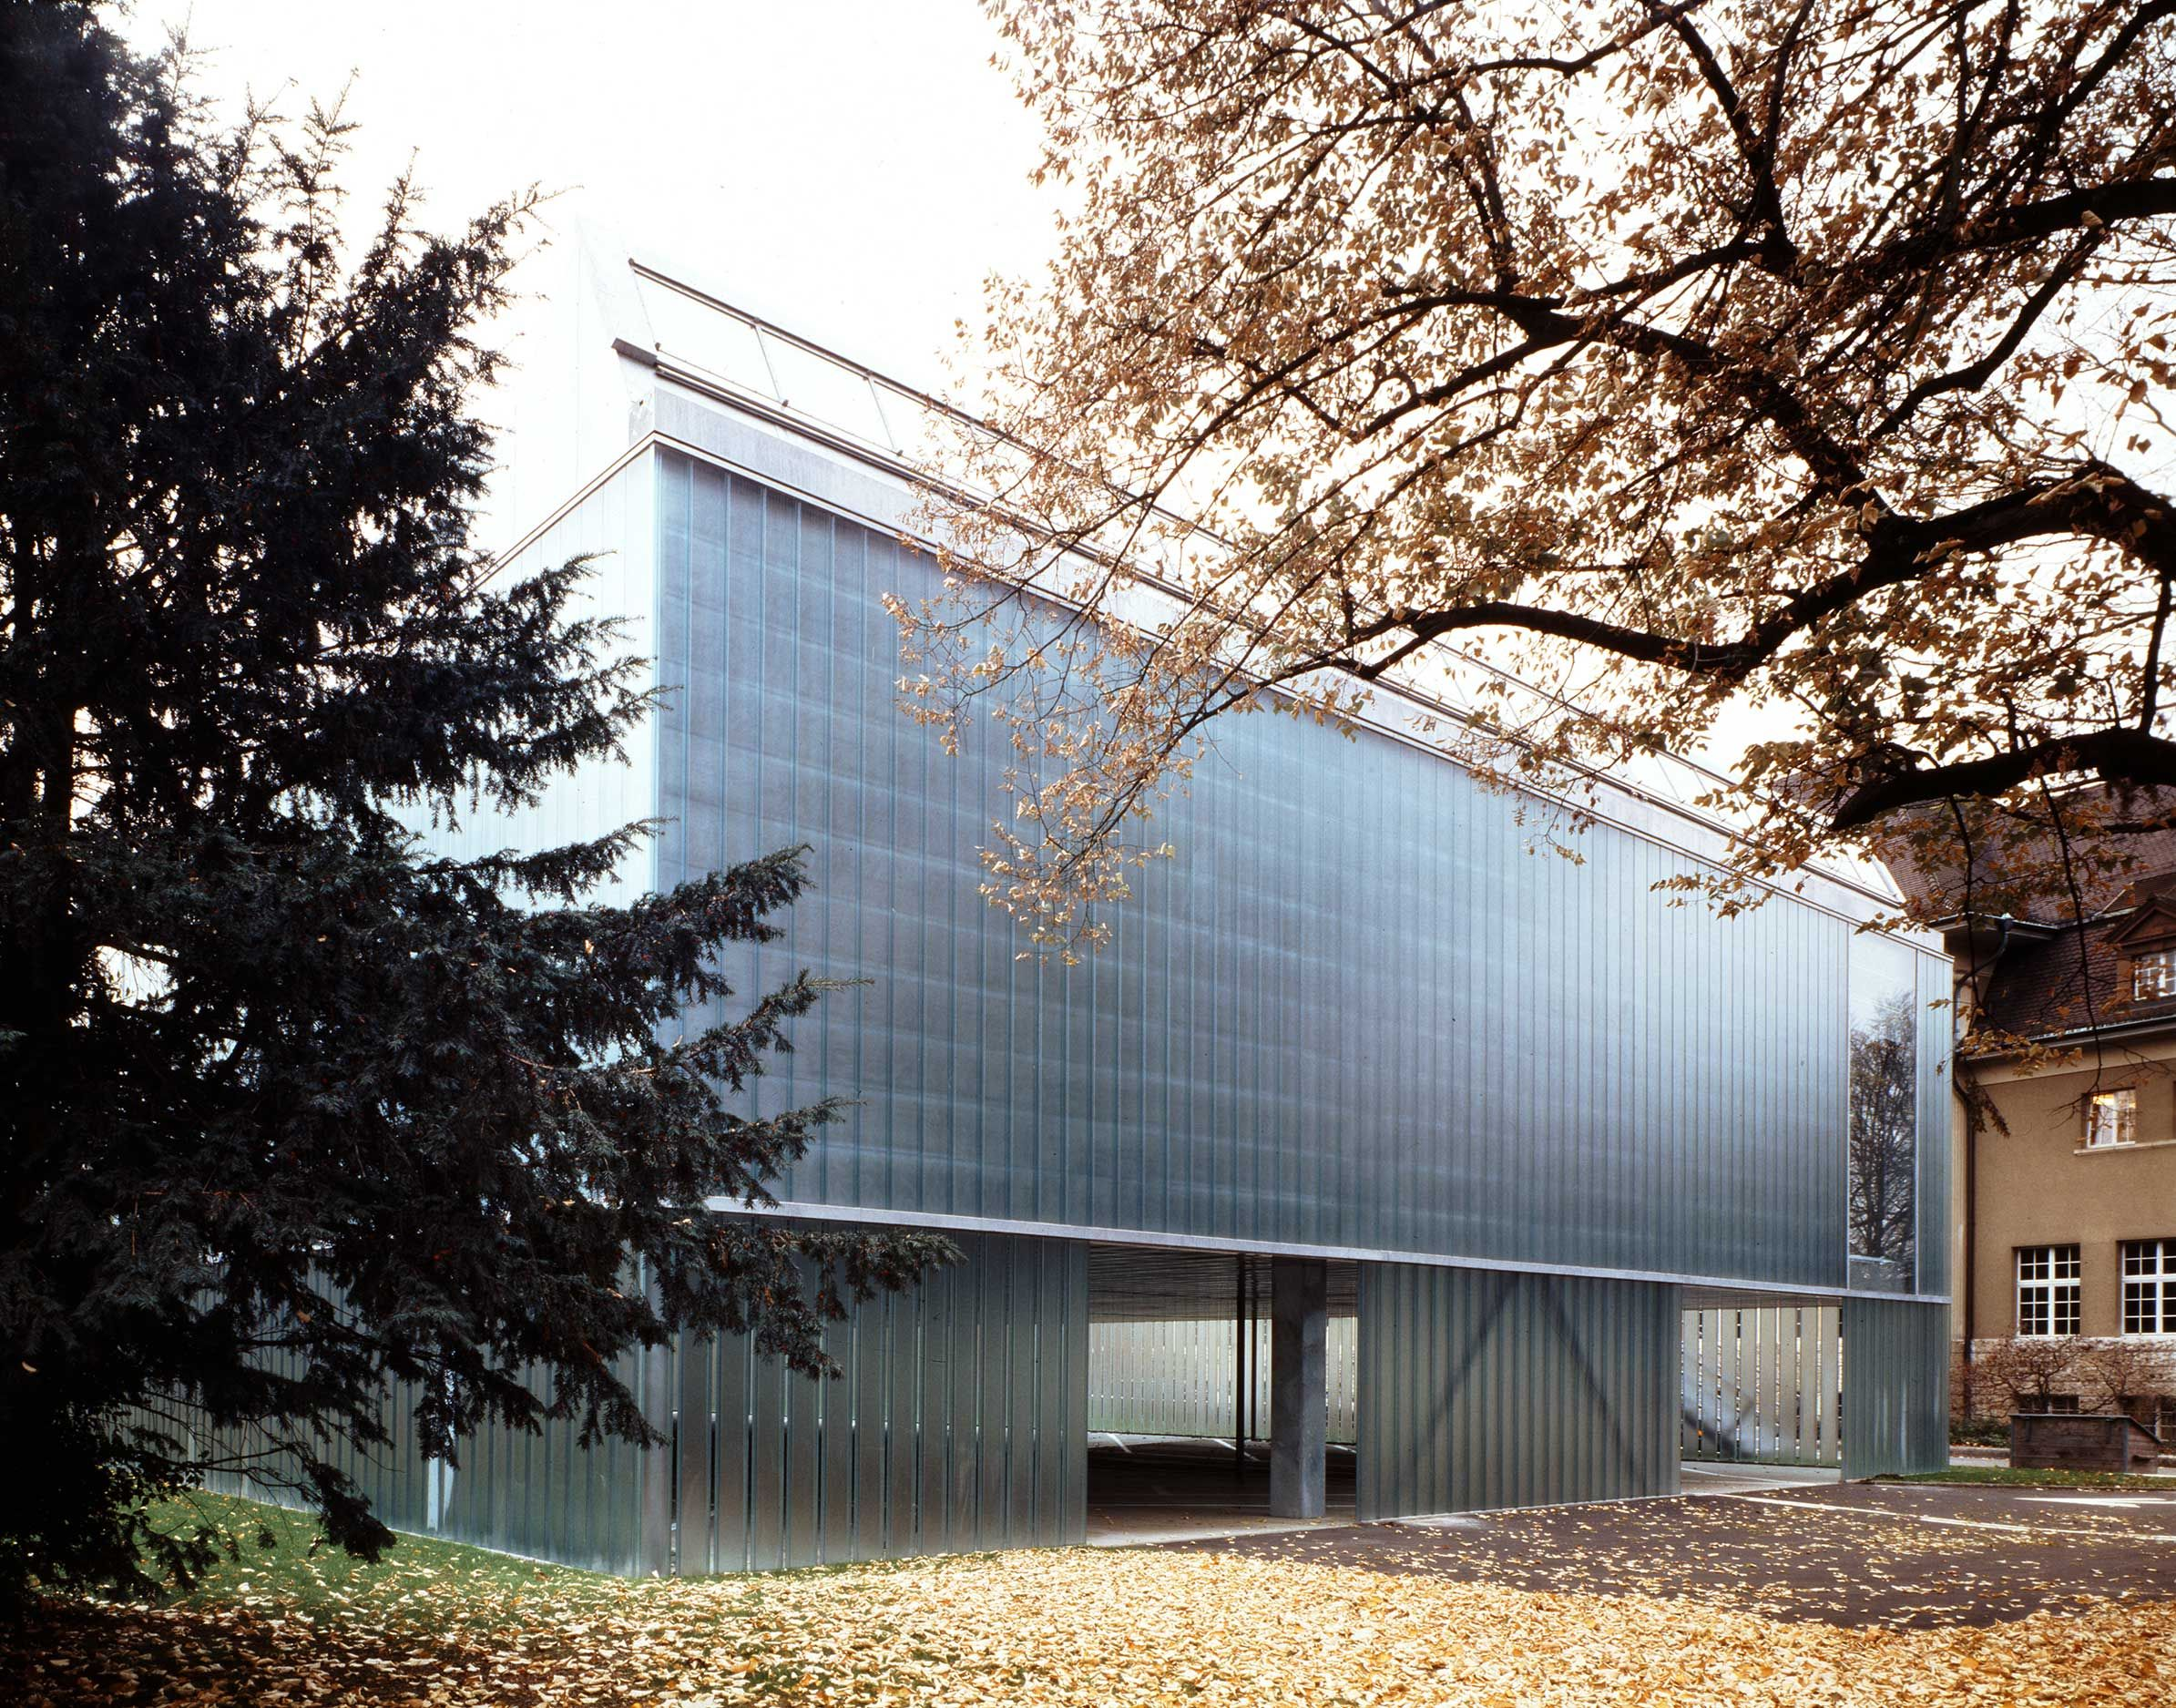 Extension of Kunstmuseum Winterthur